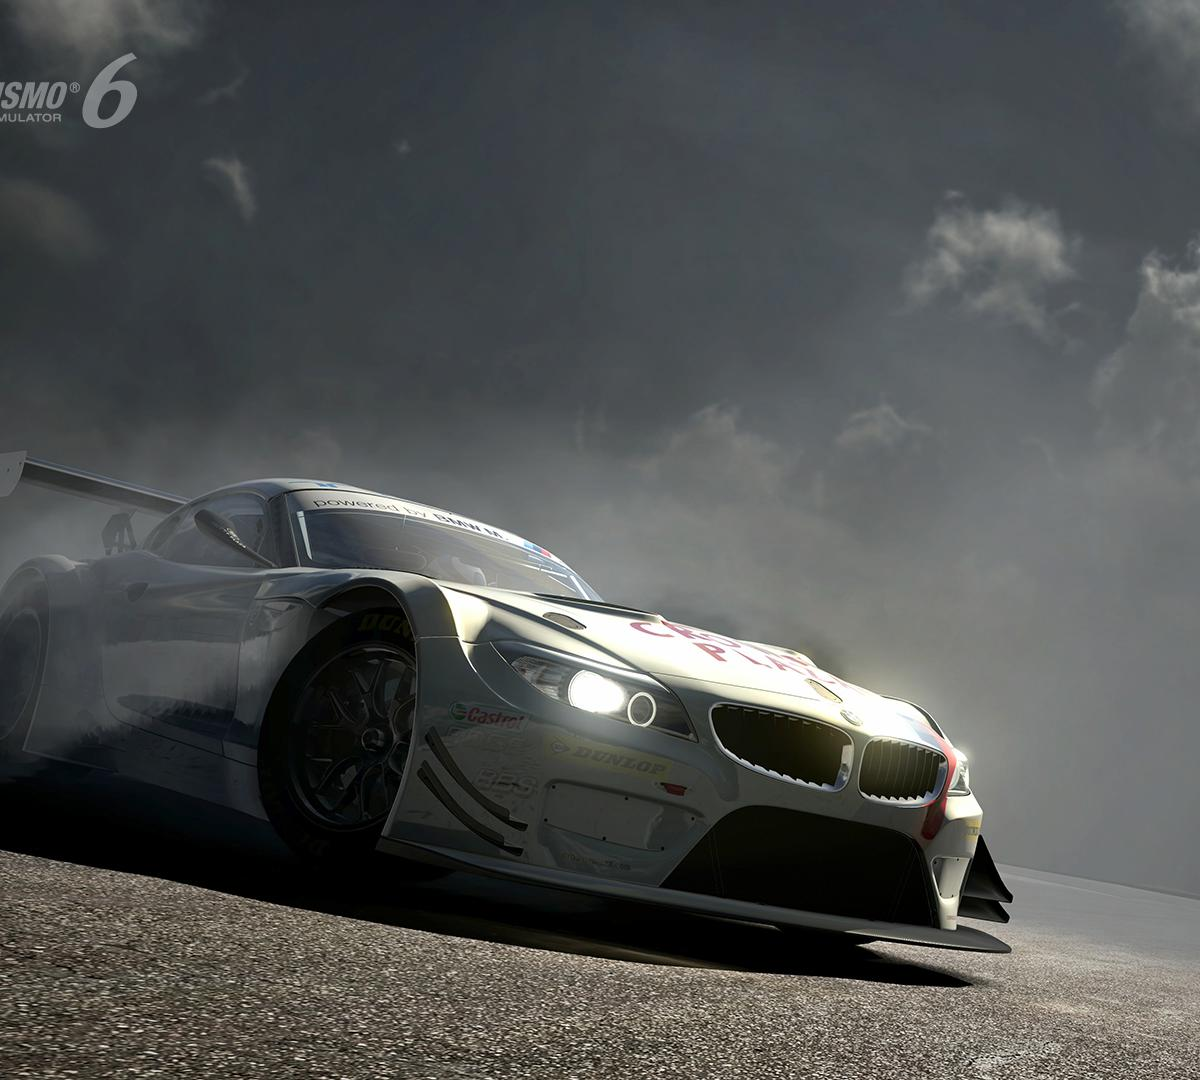 gran turismo 6 review gameplay videos impressions car list tracks and more bleacher report. Black Bedroom Furniture Sets. Home Design Ideas